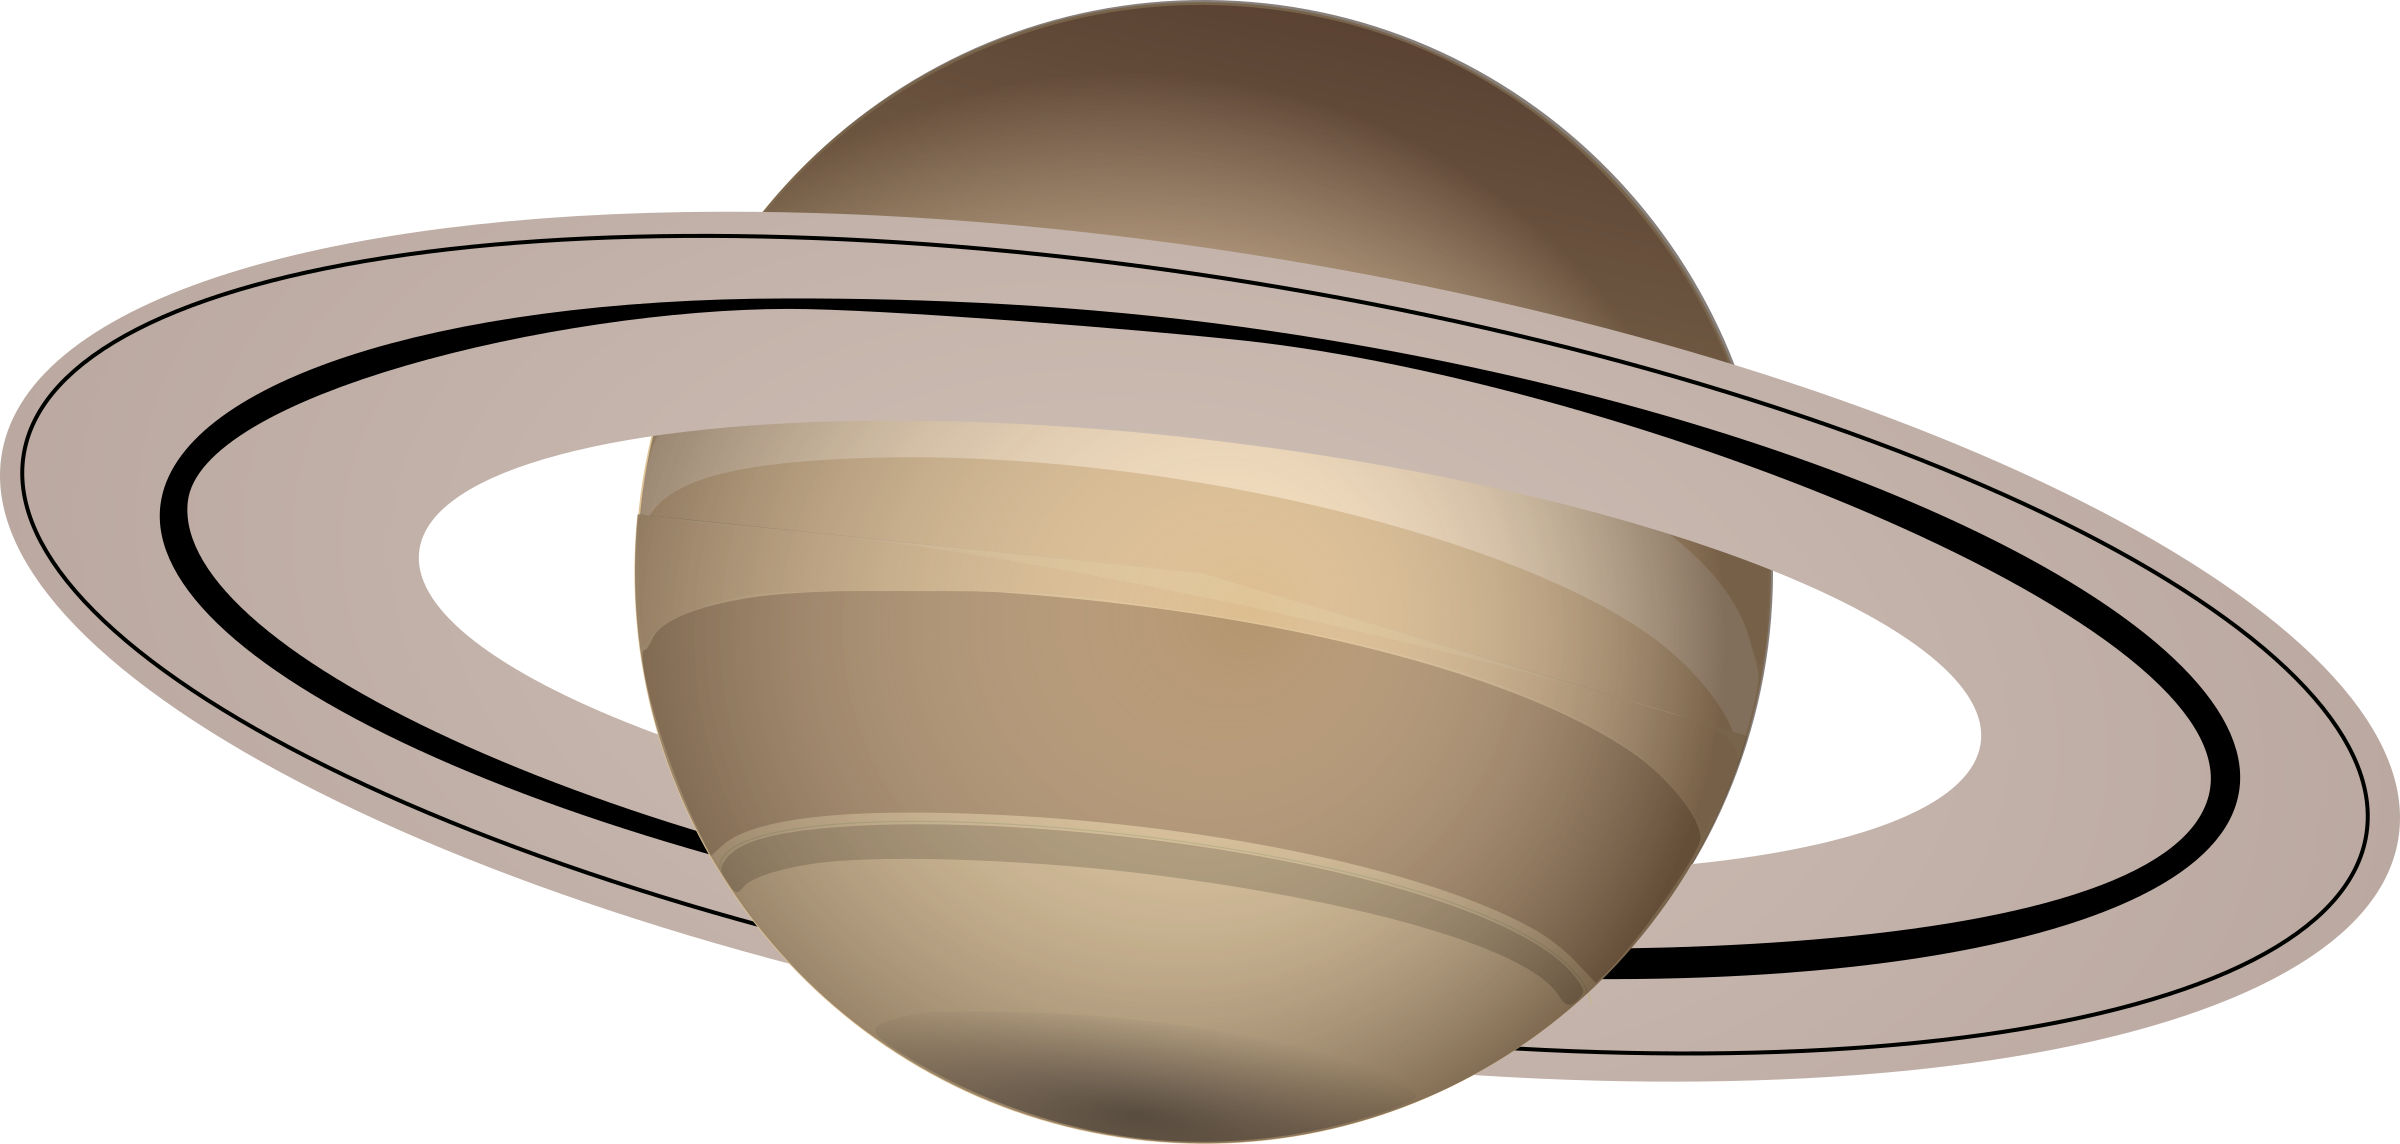 Icons png free and. Saturn clipart illustrations